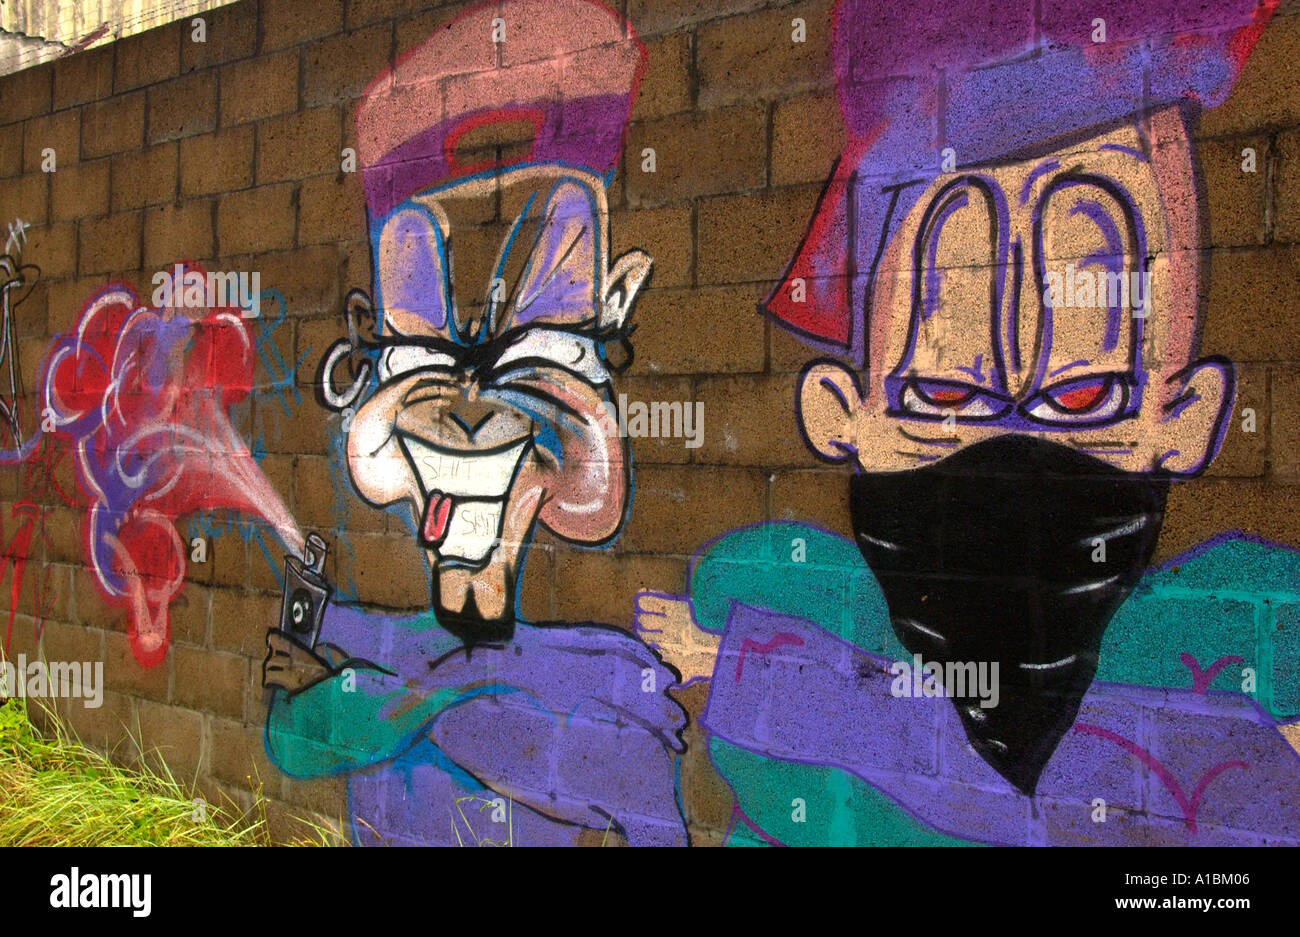 Urban graffiti art on wall of a building in city of newport south wales uk